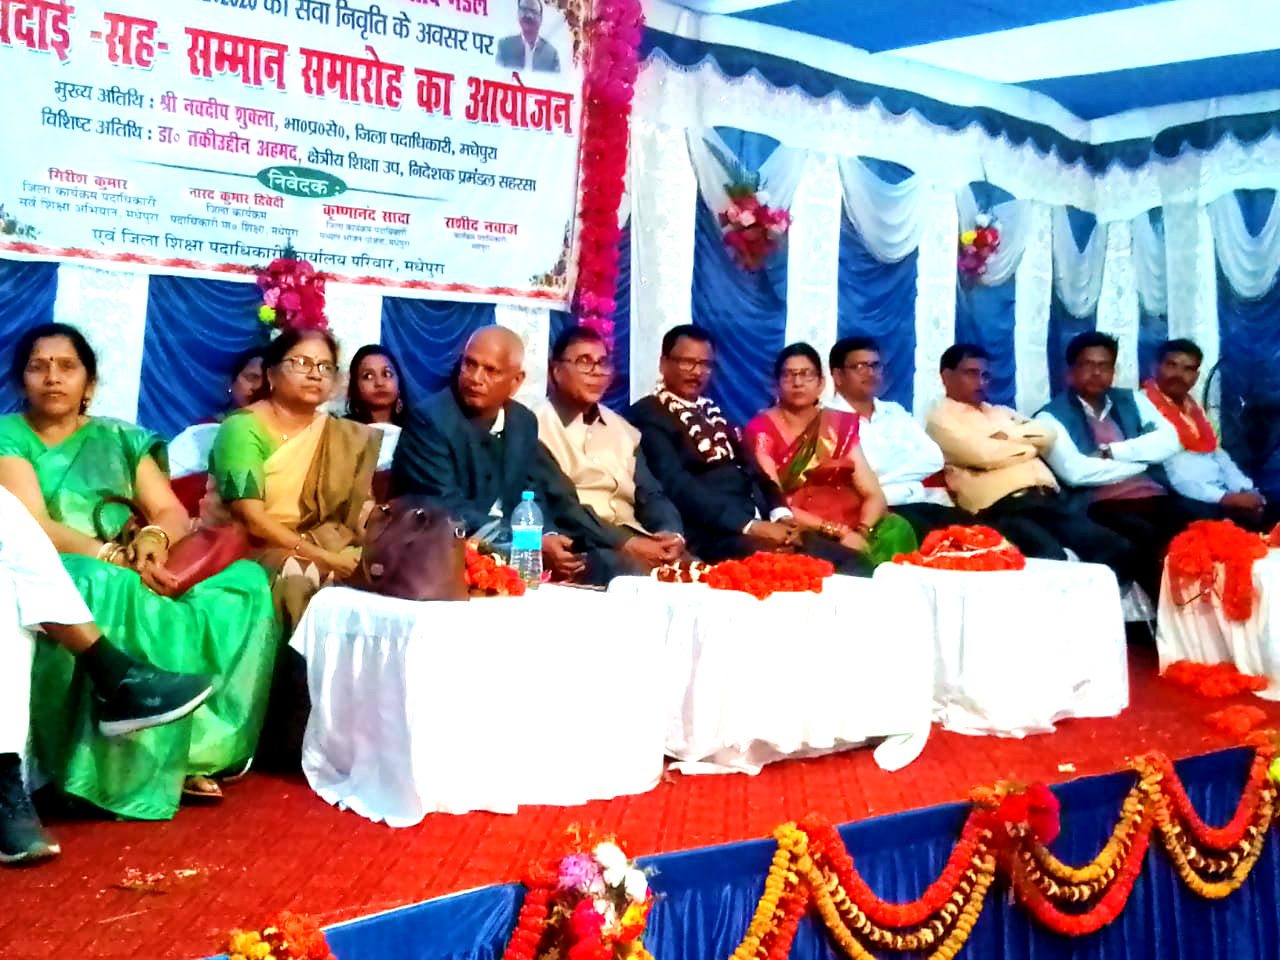 Dr.Madhepuri with District Education Officer Mr. & Mrs. Mandal amidst VIPs & others.